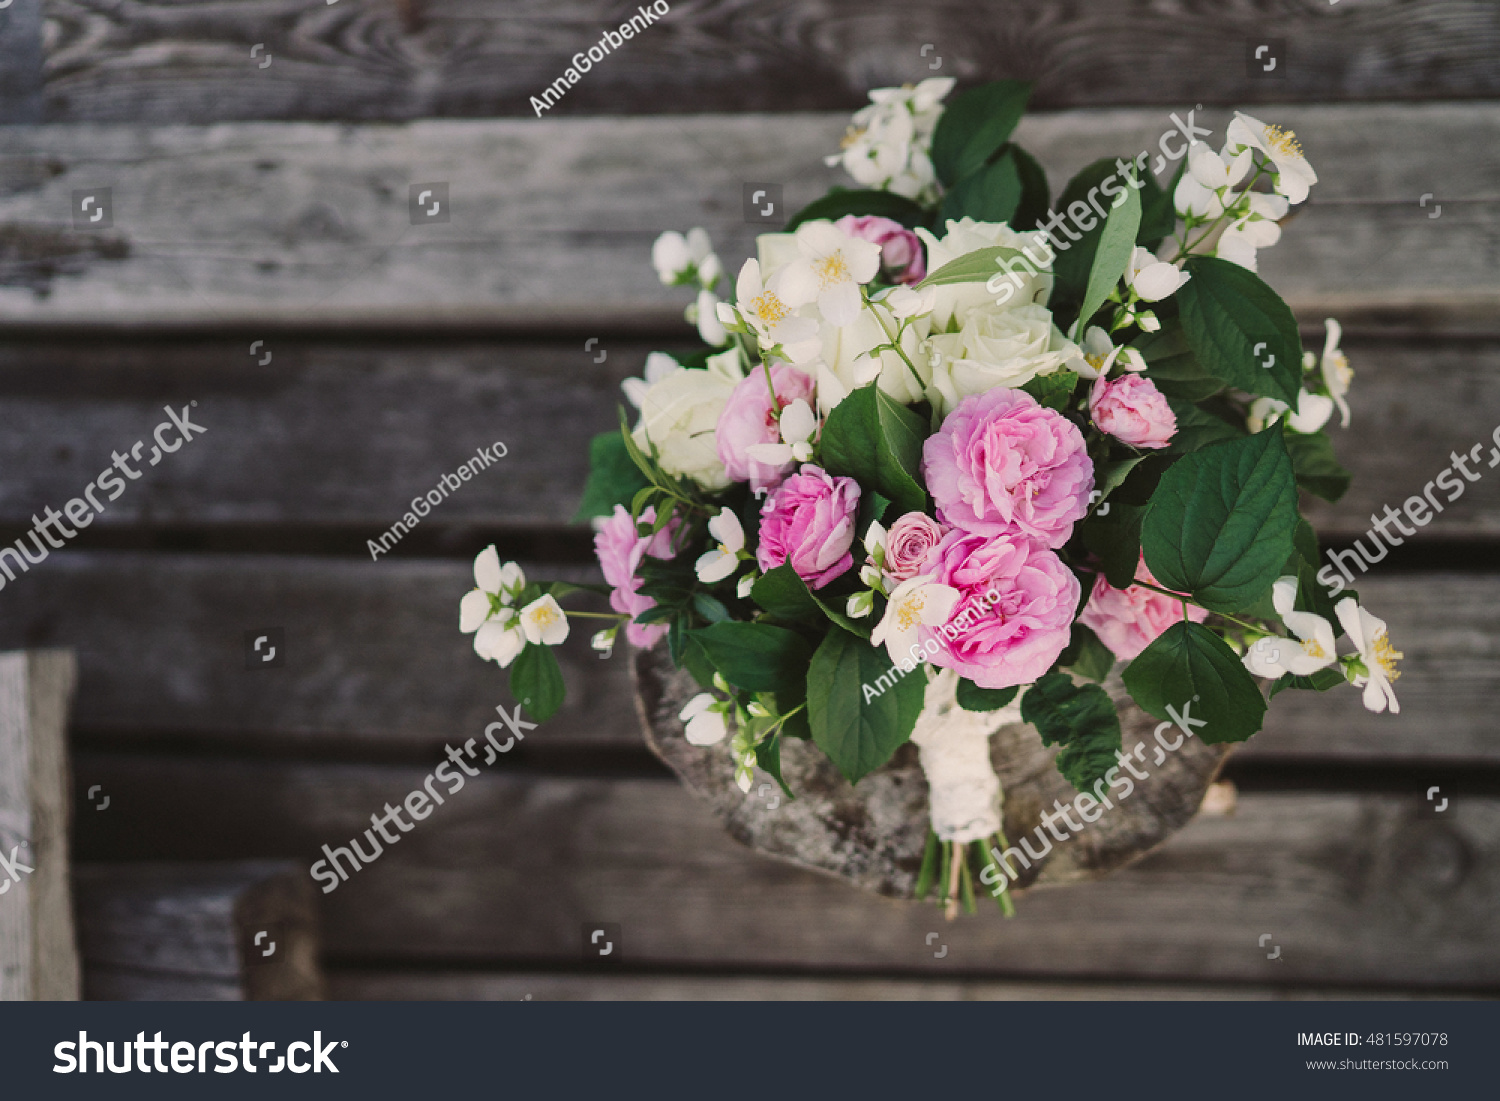 Beautiful Bouquet Of Jasmine And Pink Garden Roses With Lace Ribbons